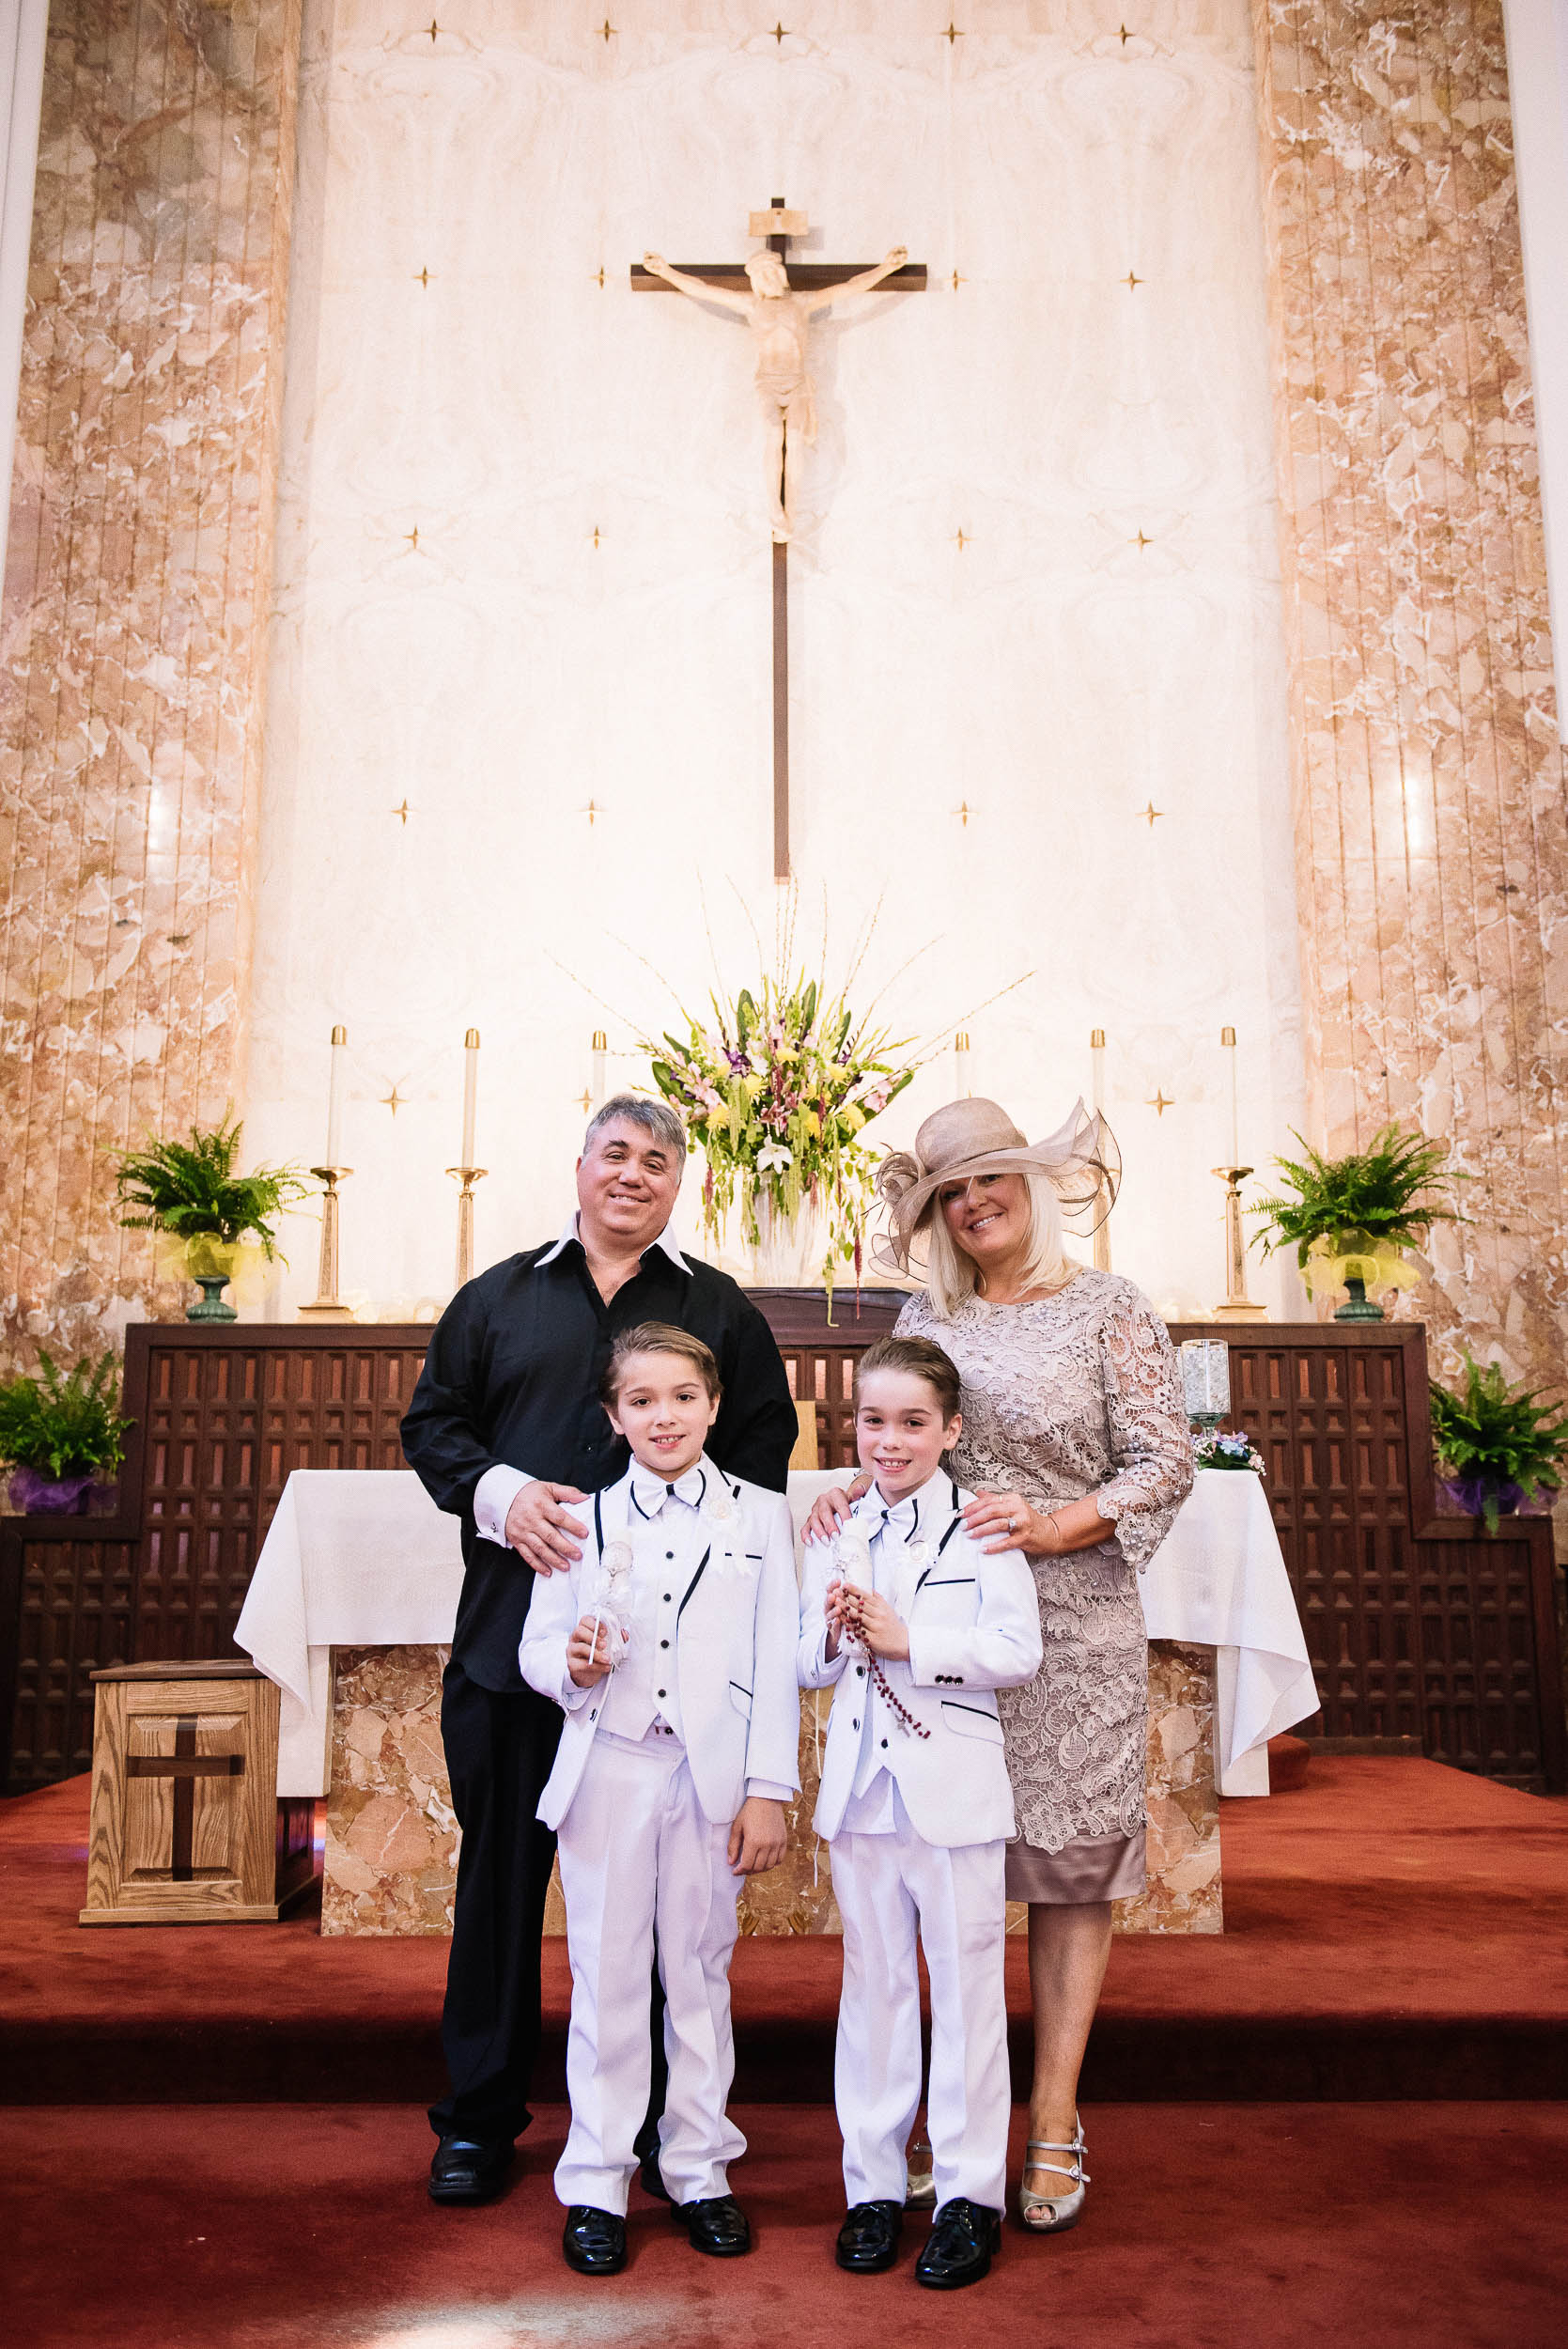 Bryan-Miraflor-Photography-First-Communion-Our-Lady-of-Grace-Church-20160501-0091.jpg